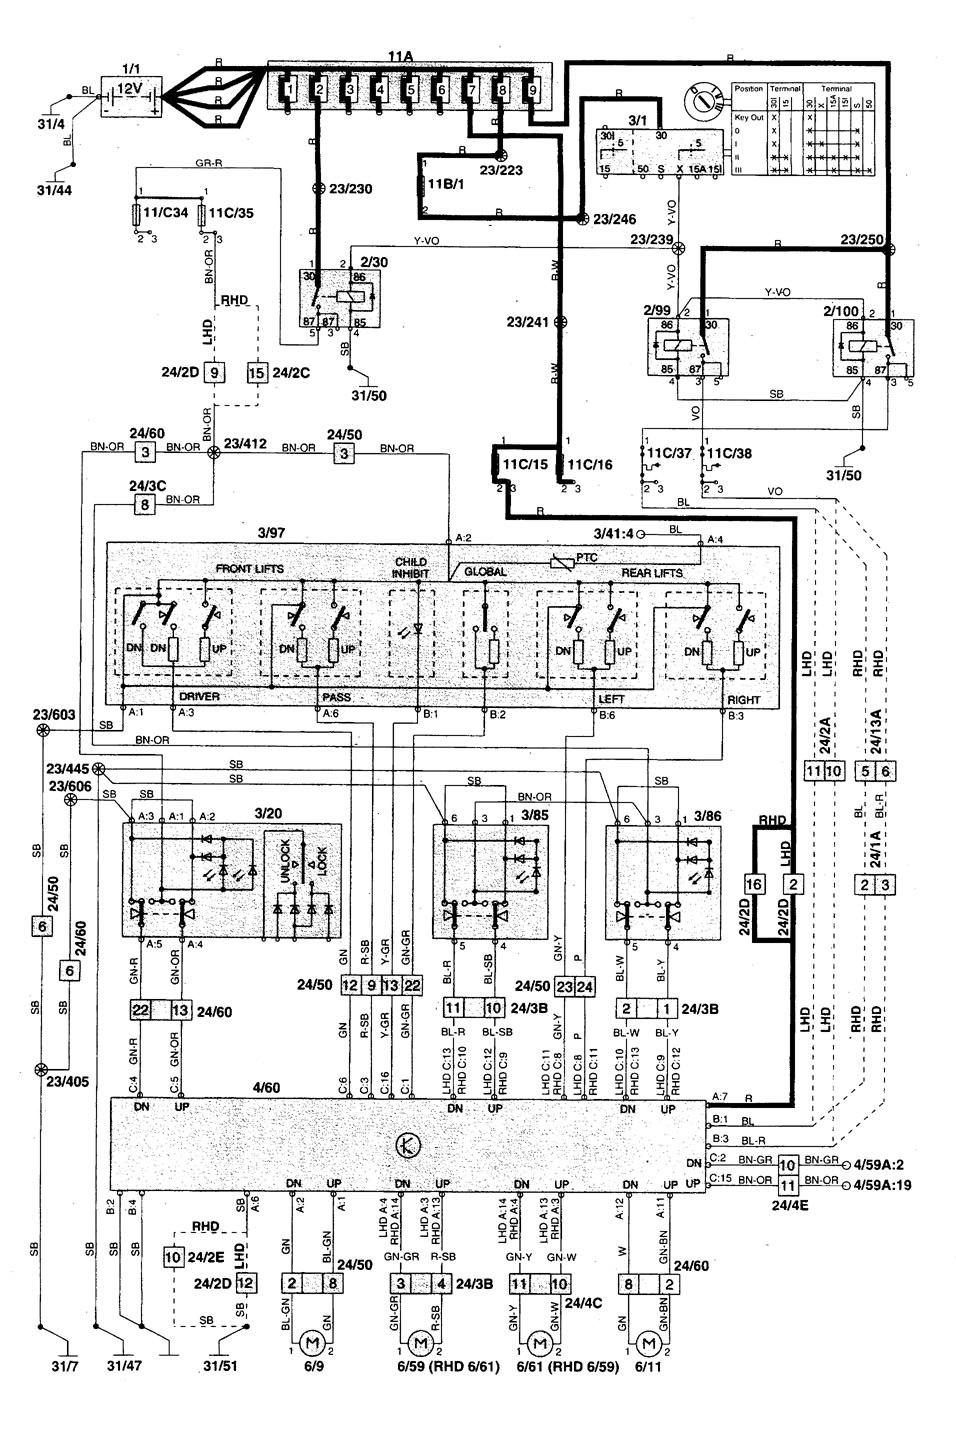 hight resolution of volvo c70 wiring diagram detailed wiring diagram rh 7 6 ocotillo paysage com audi tt wiring diagram audi tt wiring diagram